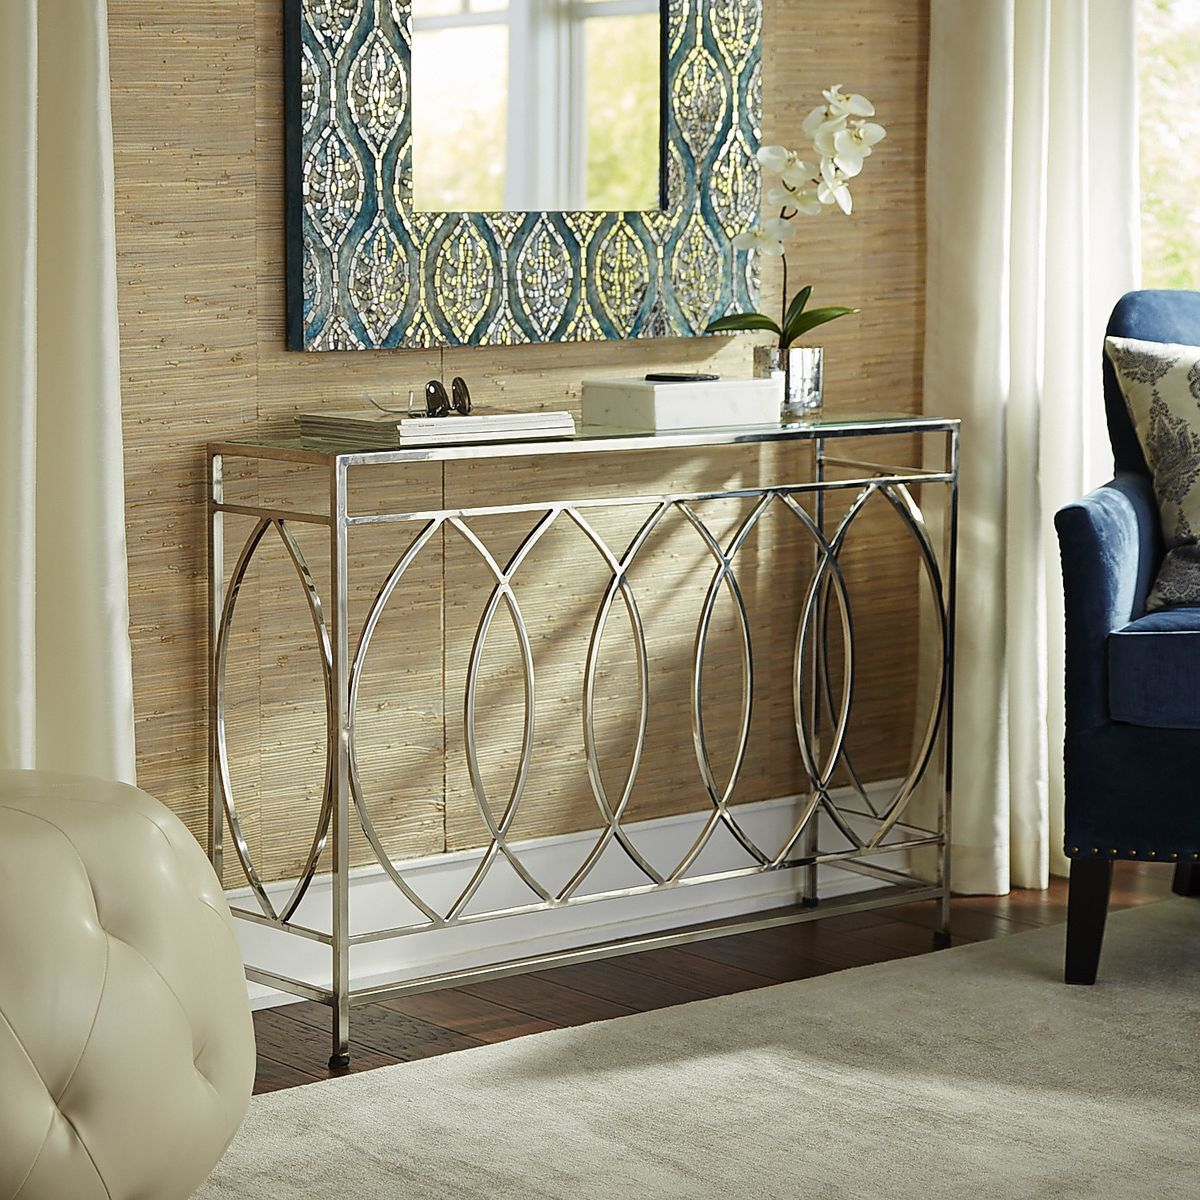 Elana Silver Stainless Steel Console Table | Console tables ...